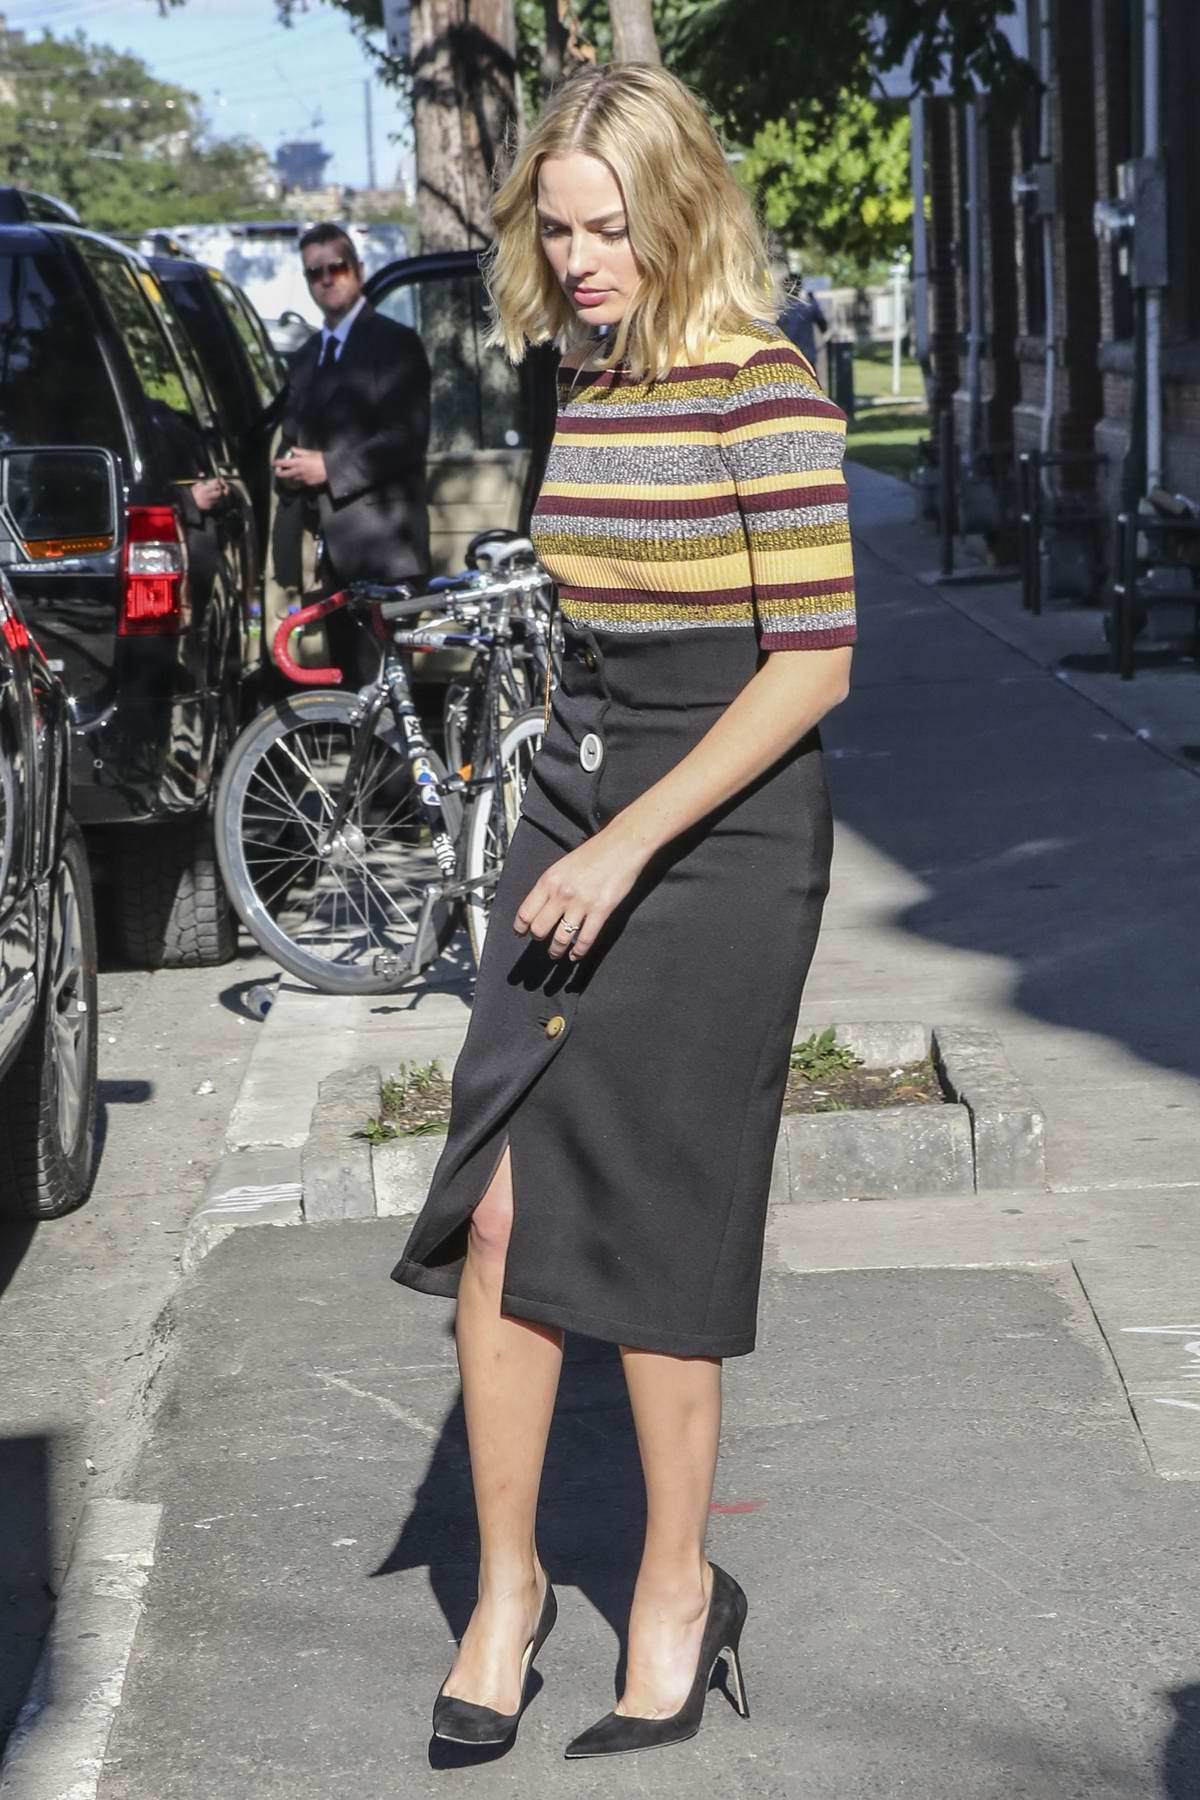 Margot Robbie is spotted out and about in Toronto during the Toronto International Film Festival